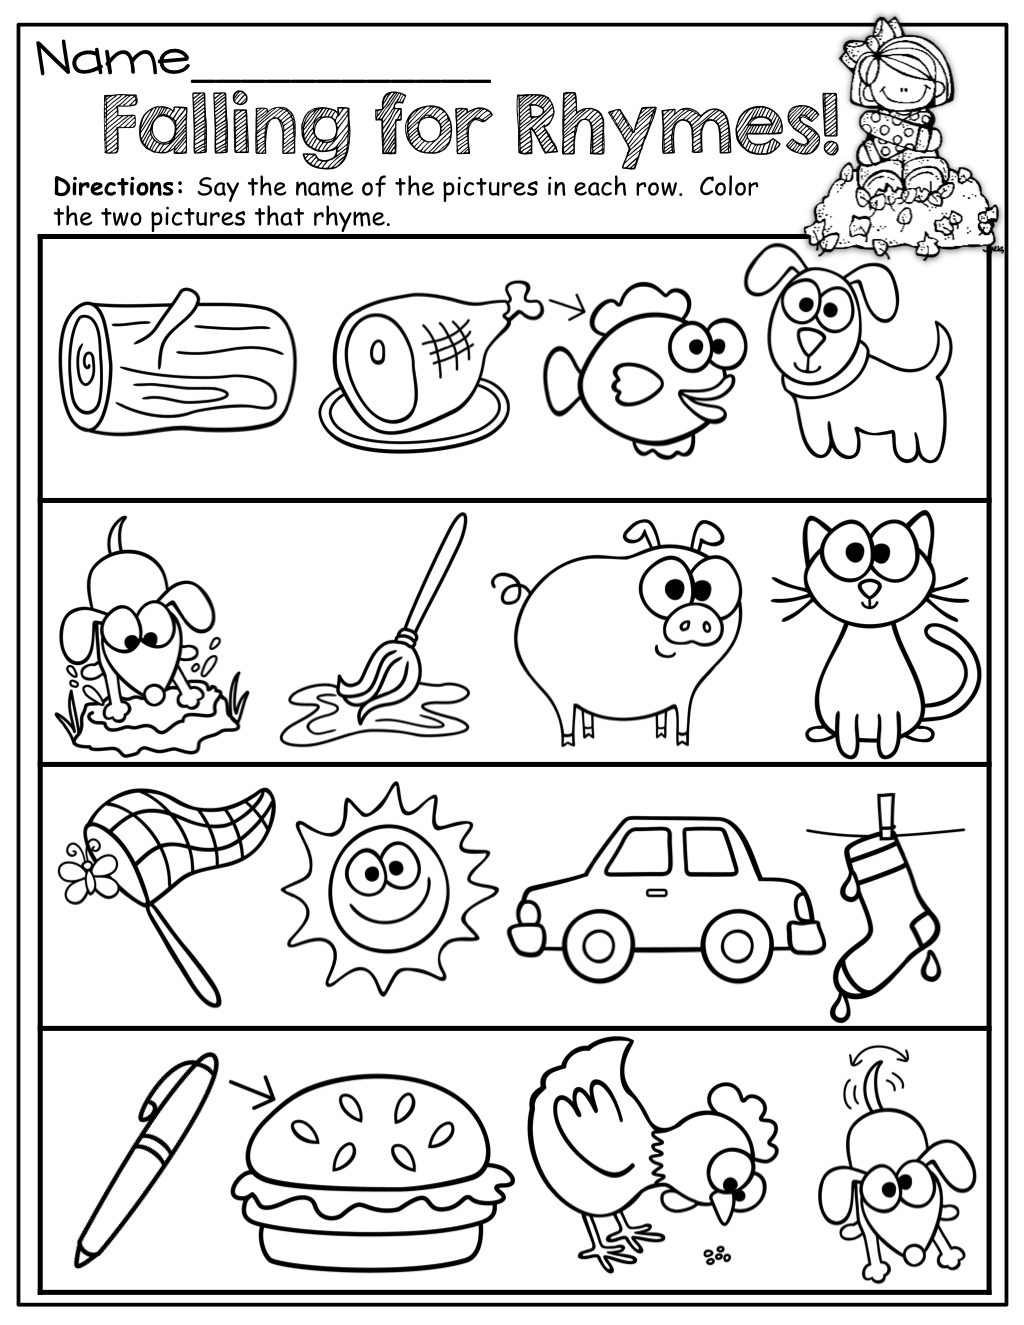 Uncategorized Kindergarten Rhyming Worksheets rhyming cut and paste worksheets for kindergarten letter p also match game 17 best images about words on pinterest worksh